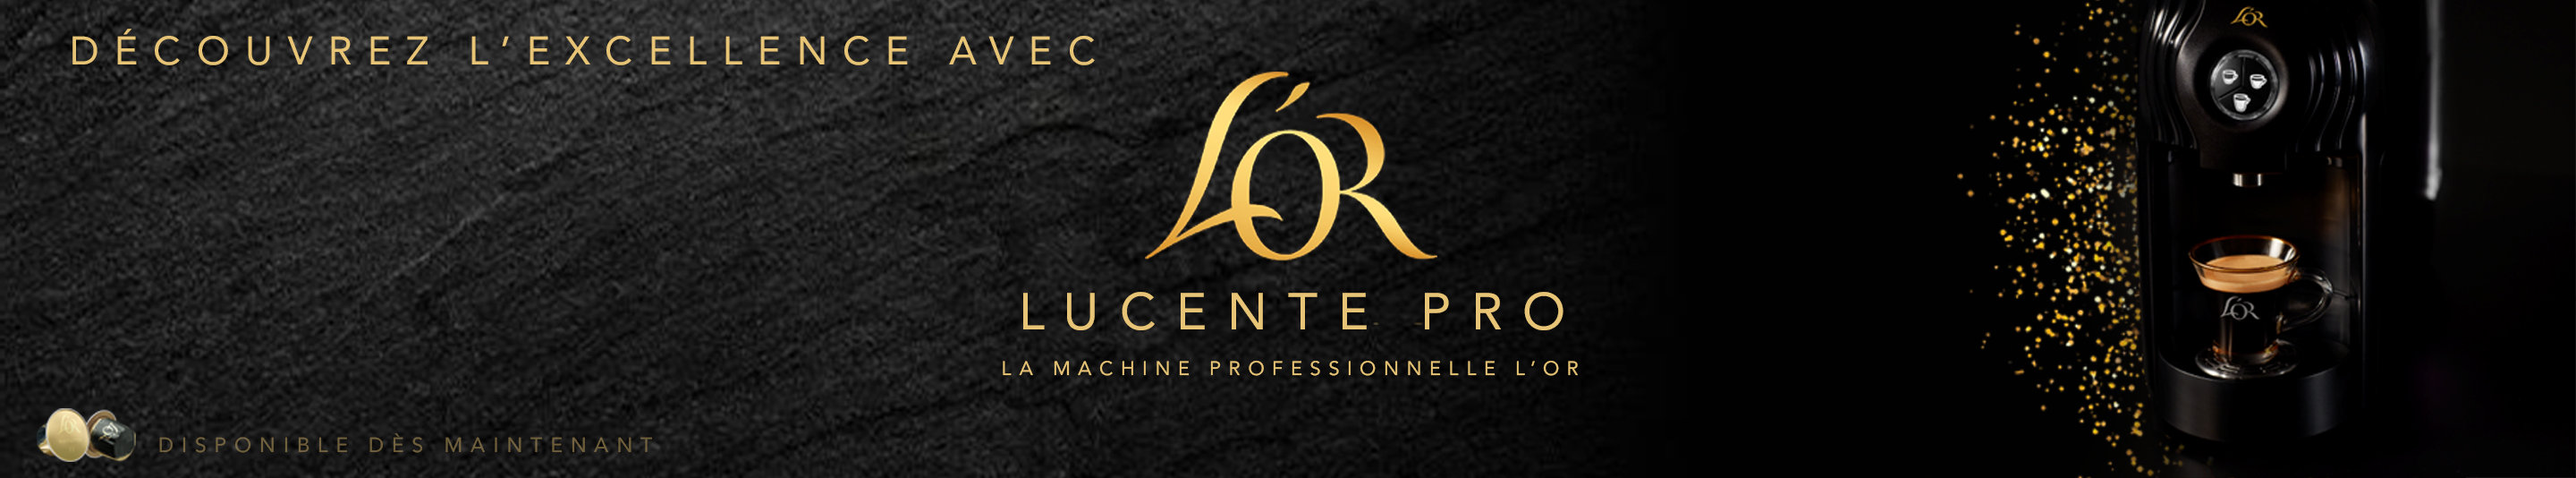 L'OR LUCENTE PRO